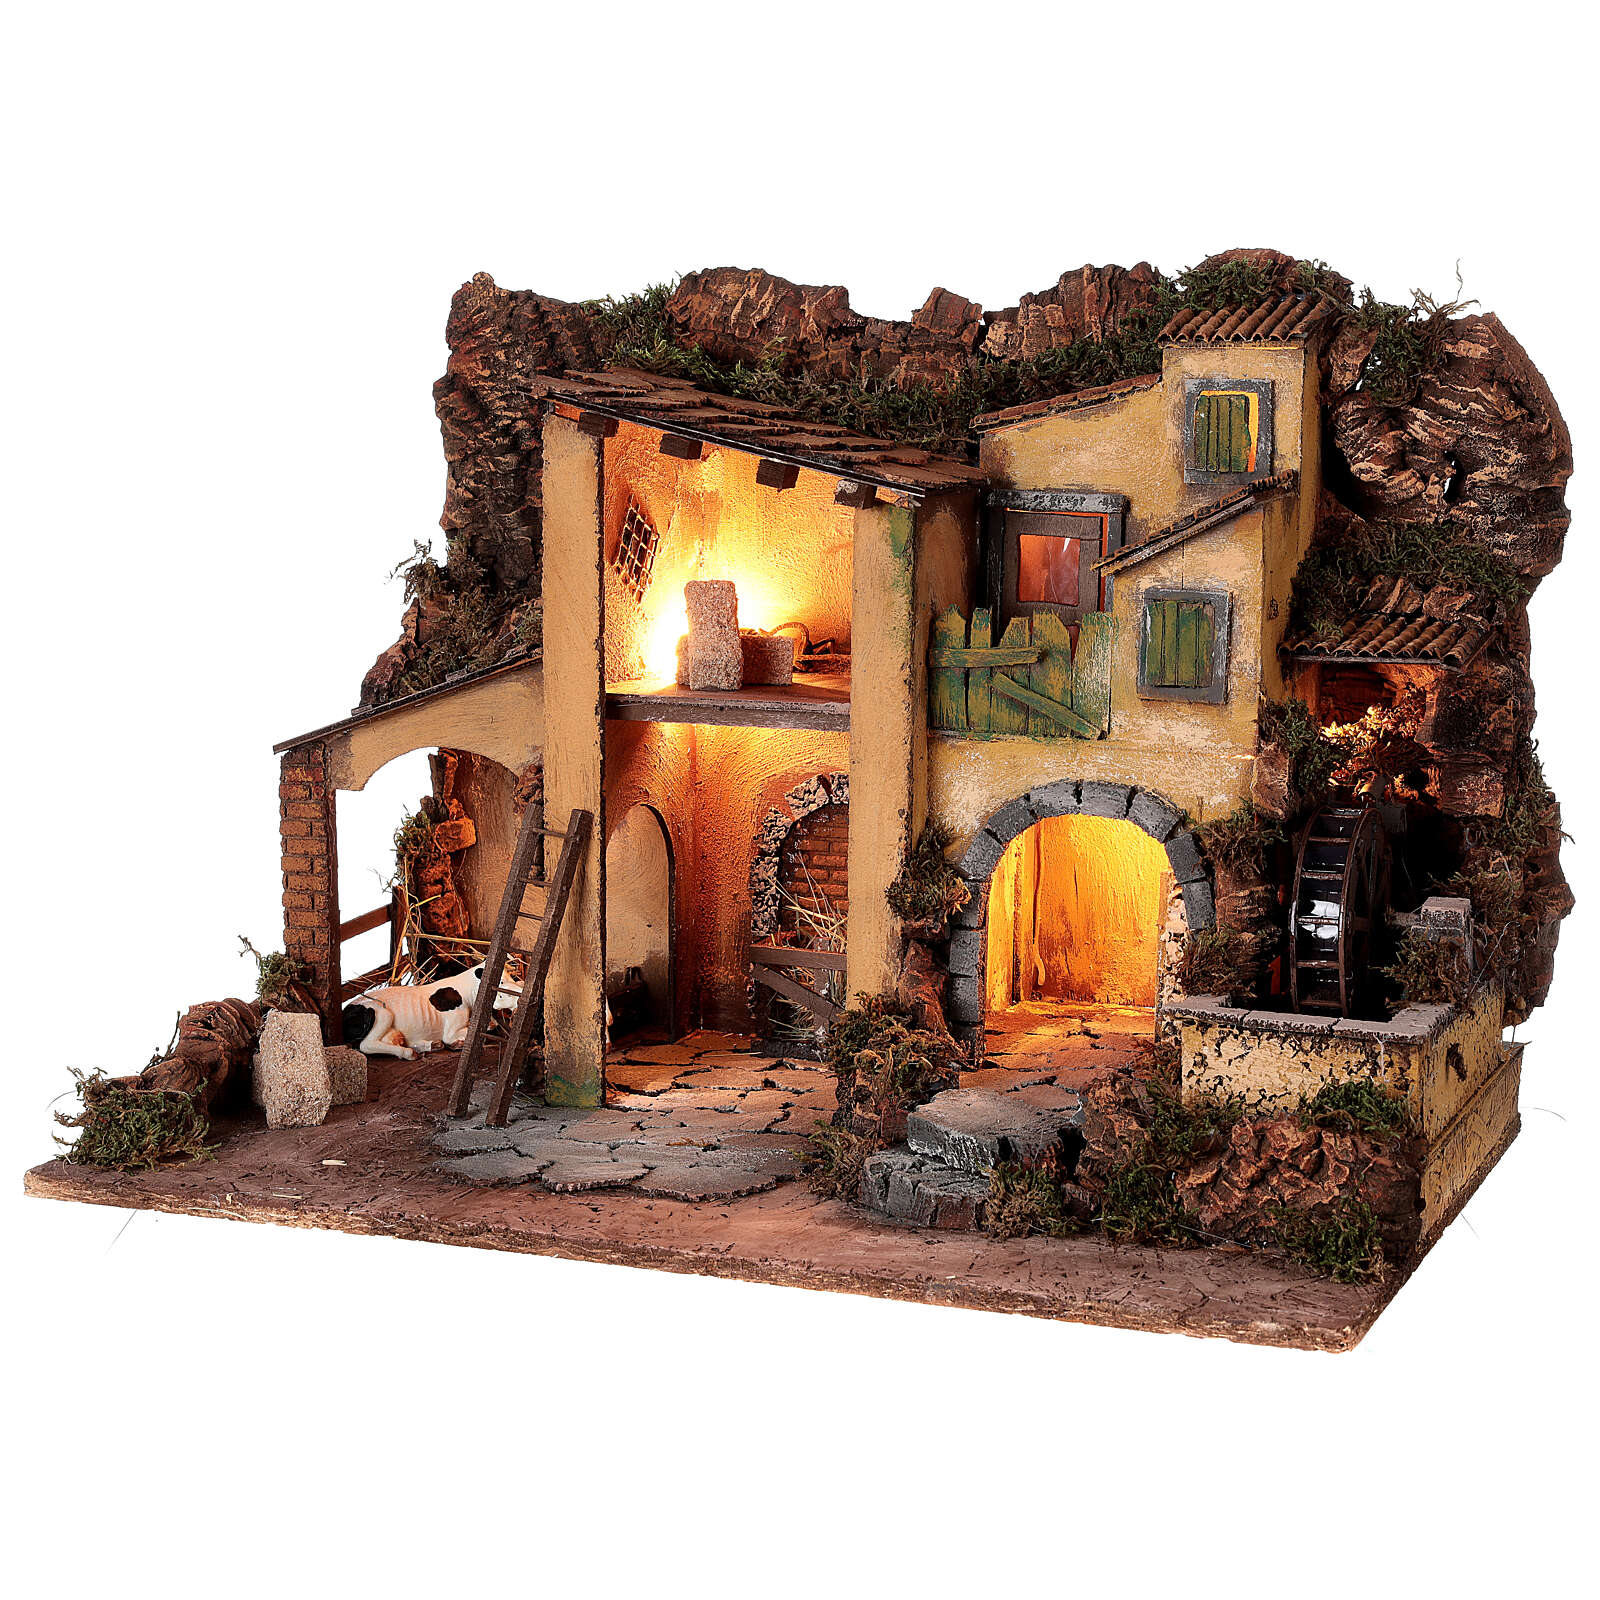 1700s Neapolitan nativity village with watermill 40x60x40 cm for 10 cm figures 4